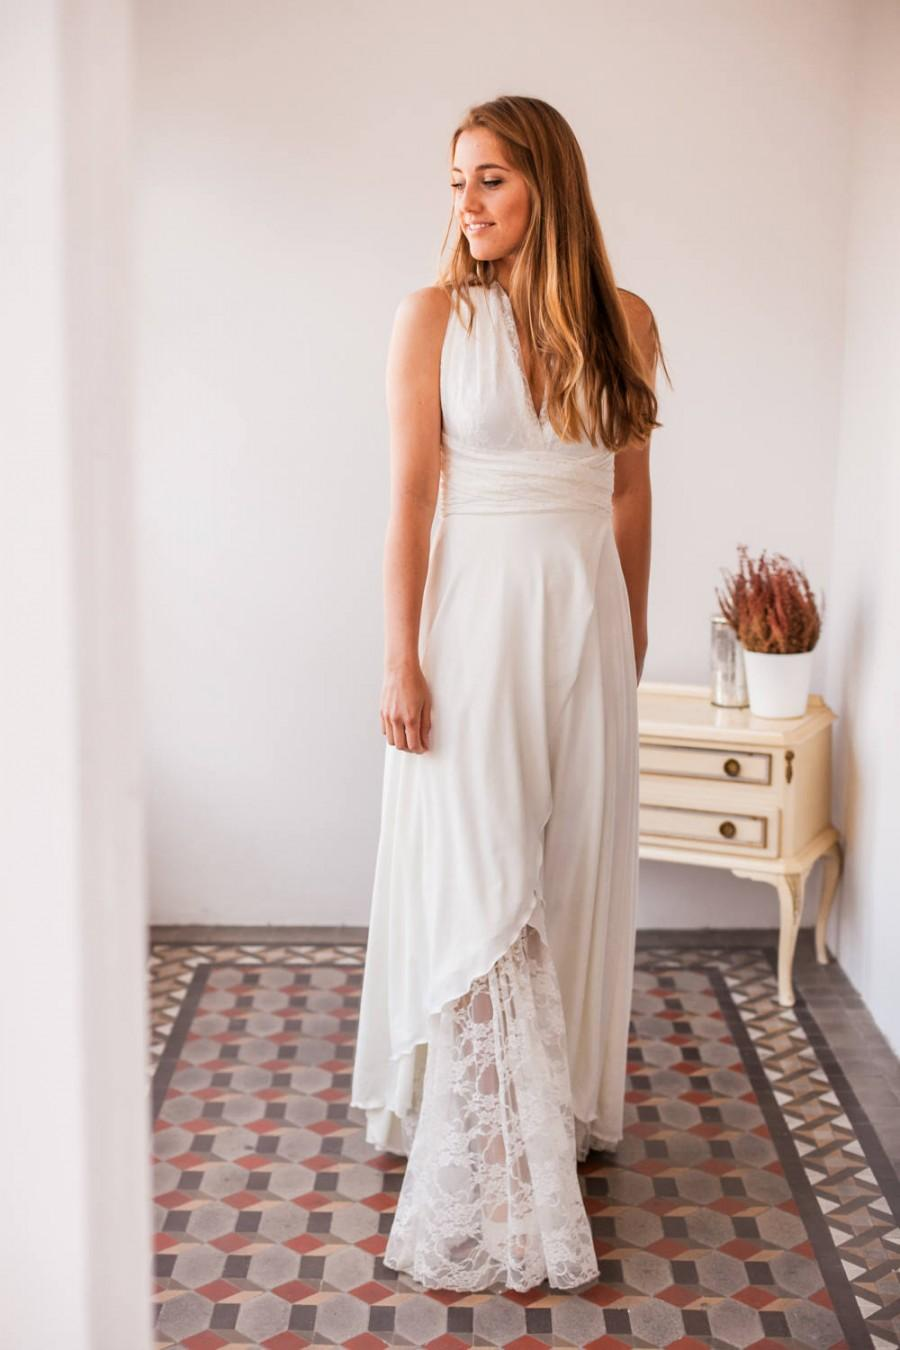 Wedding - Open front wedding dress, open front lace wedding dress, high low bridal gown, ivory lace bridal gown with slit, crossed skirt bridal gown